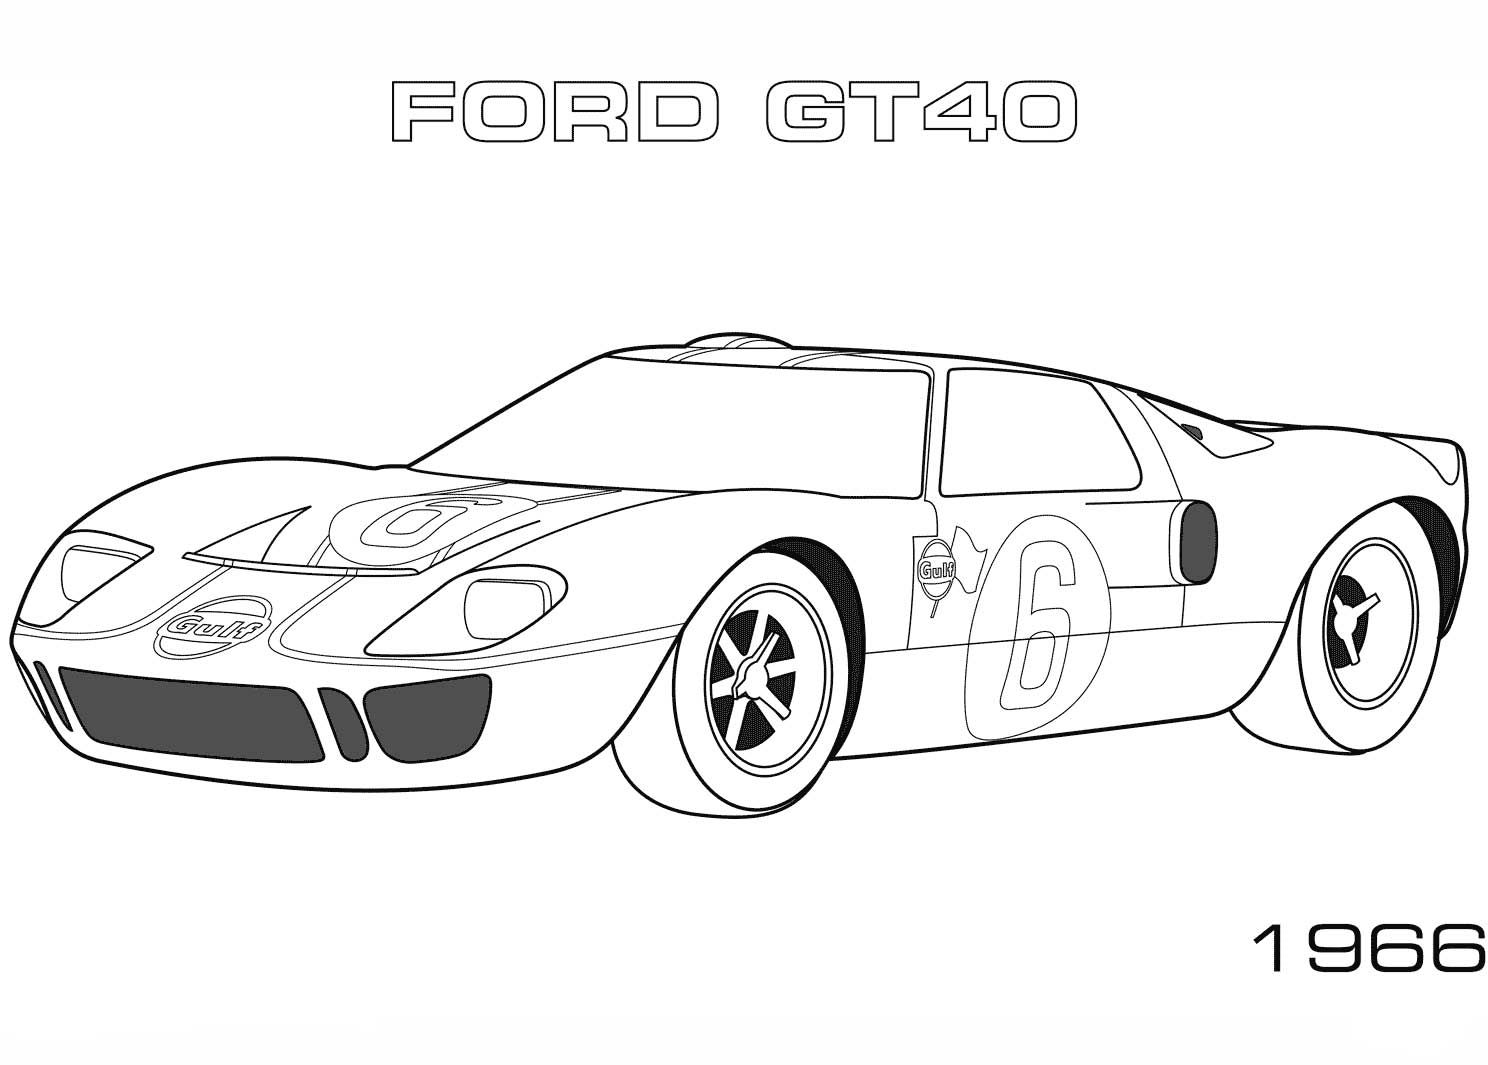 1966 Ford Gt40 Coloring Page Coloring Pages Sports Coloring Pages Ford Gt40